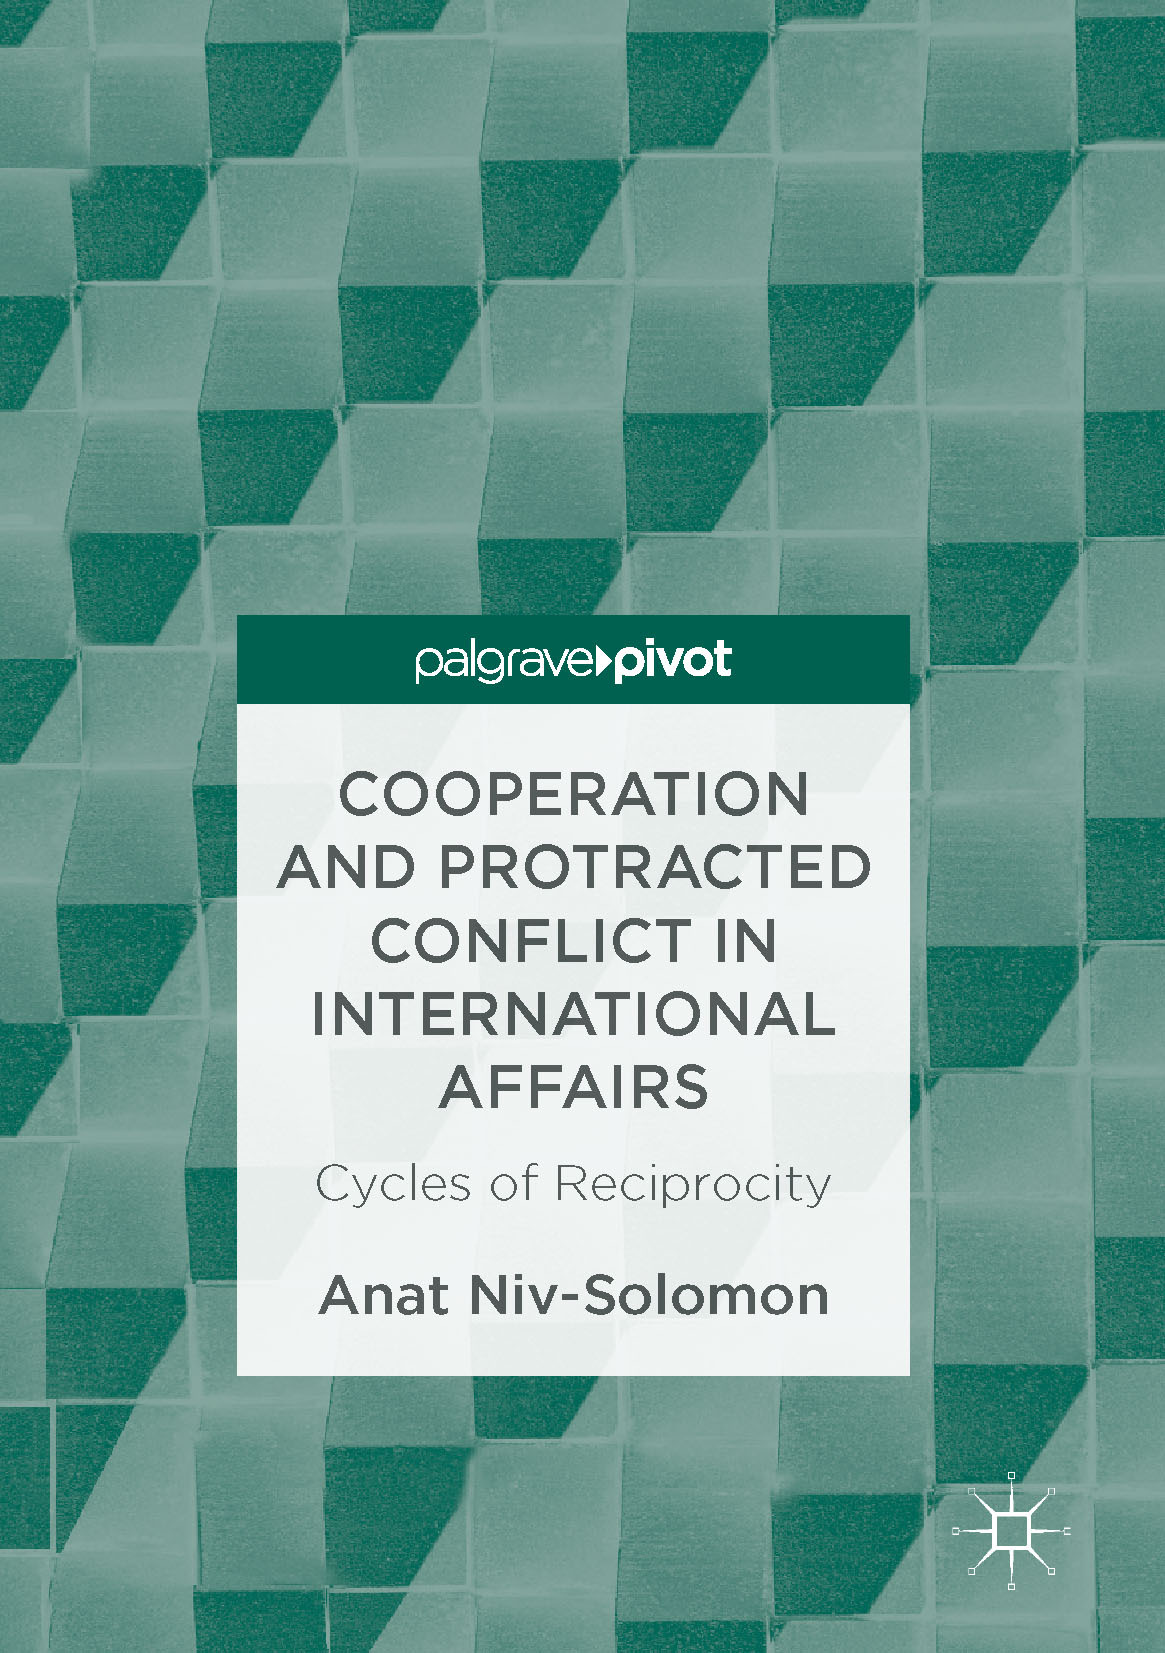 Niv-Solomon, Anat - Cooperation and Protracted Conflict in International Affairs, ebook